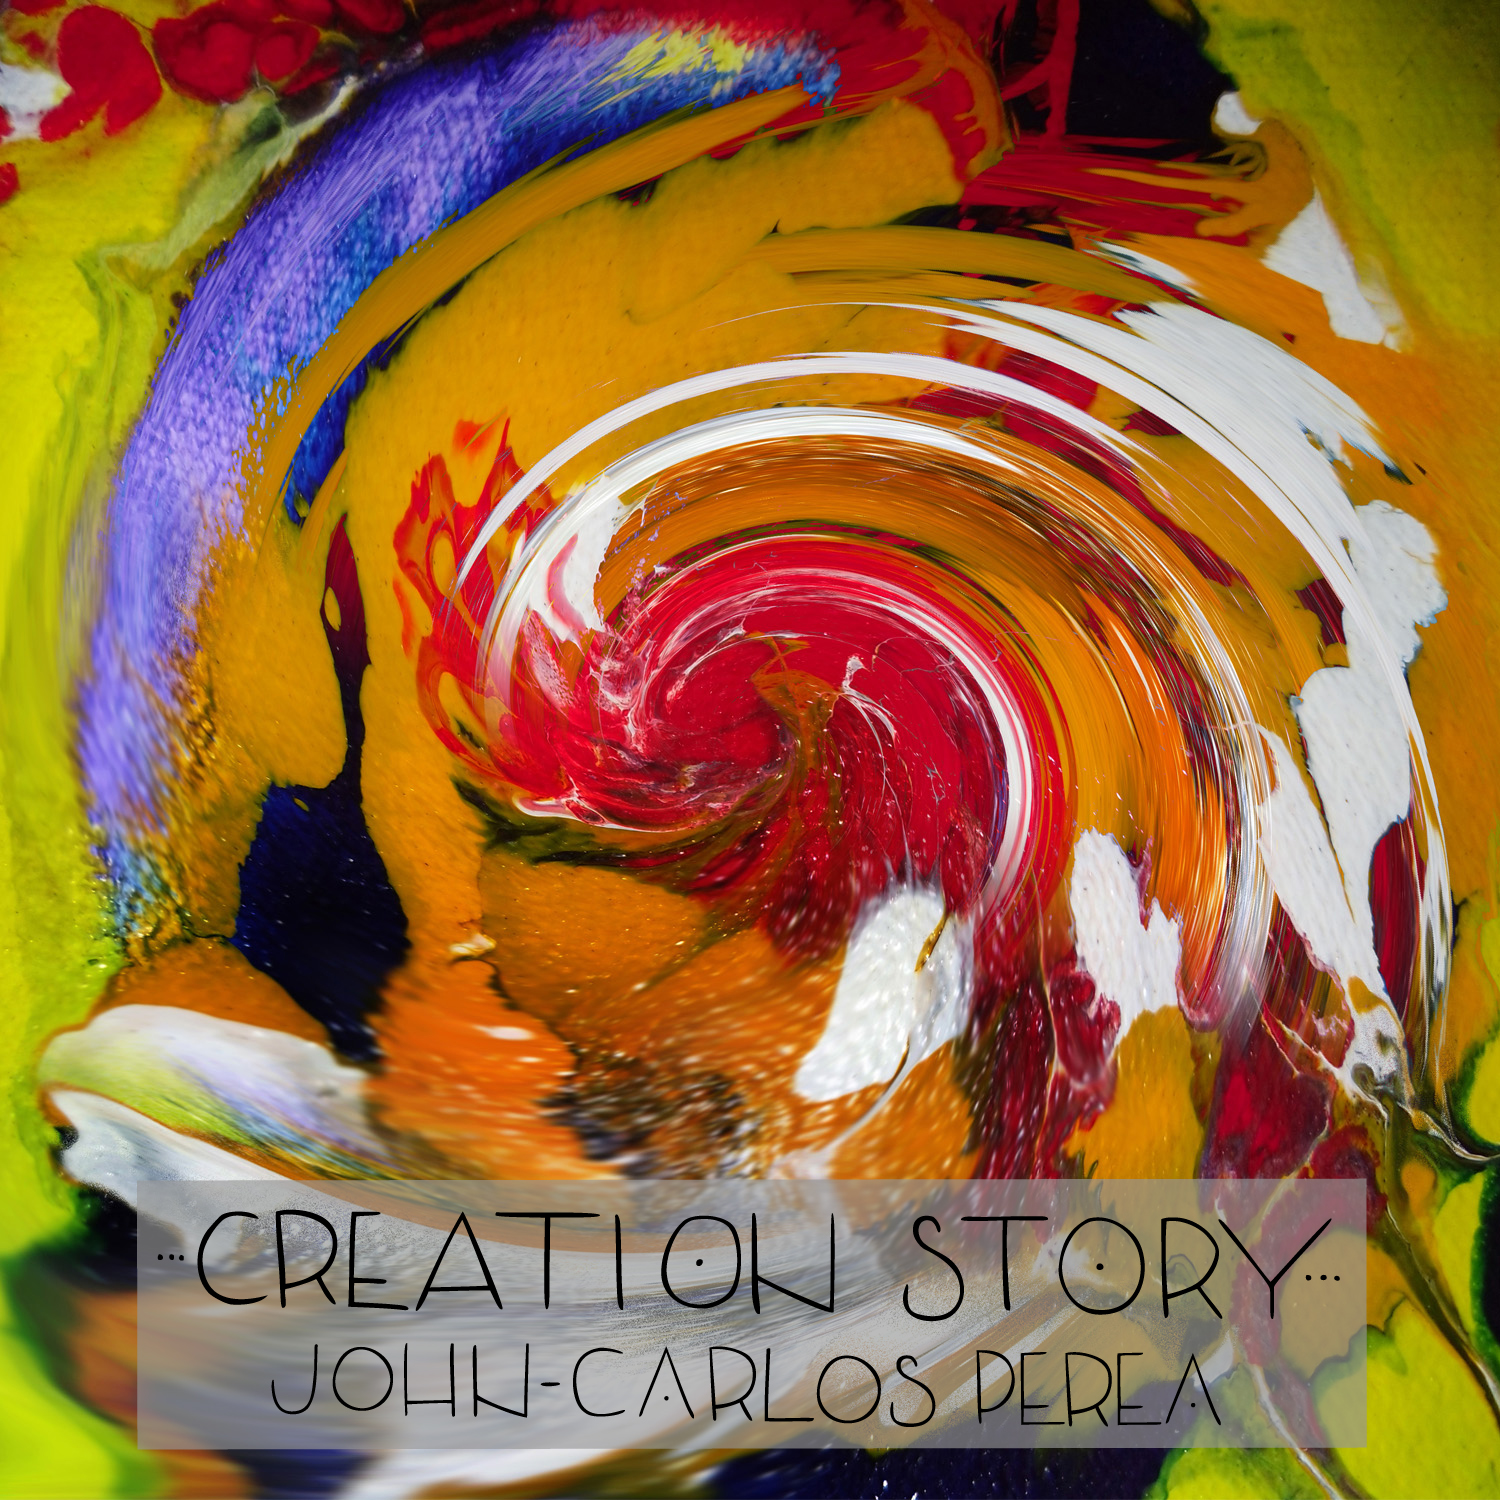 Creation Story text